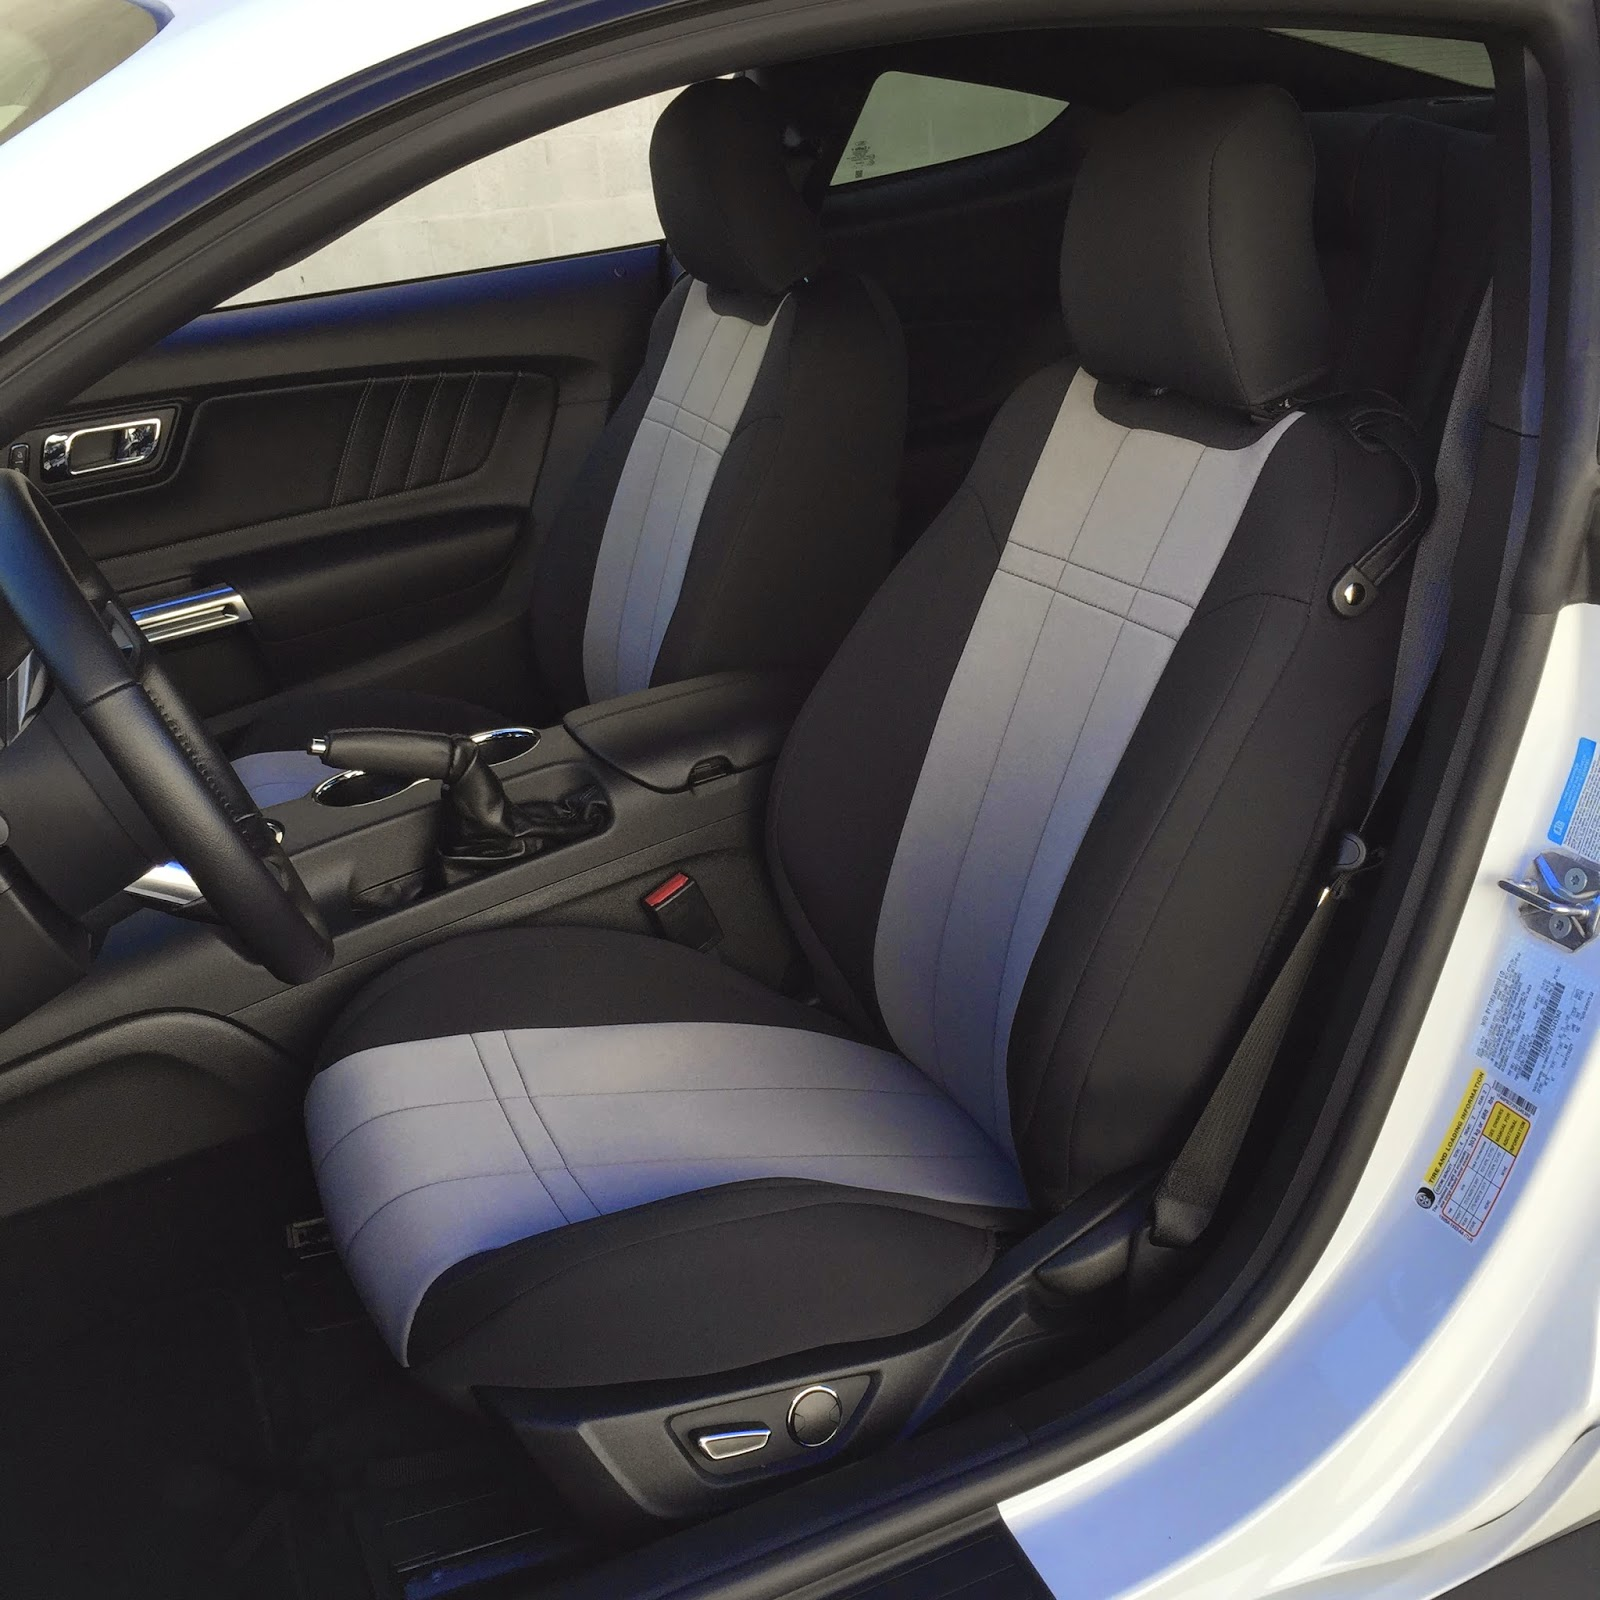 Protect The Ford Mustang Factory Seats With Custom Fit Seat Covers From Cal Trend We Went A Set Of Popular Neo Supreme